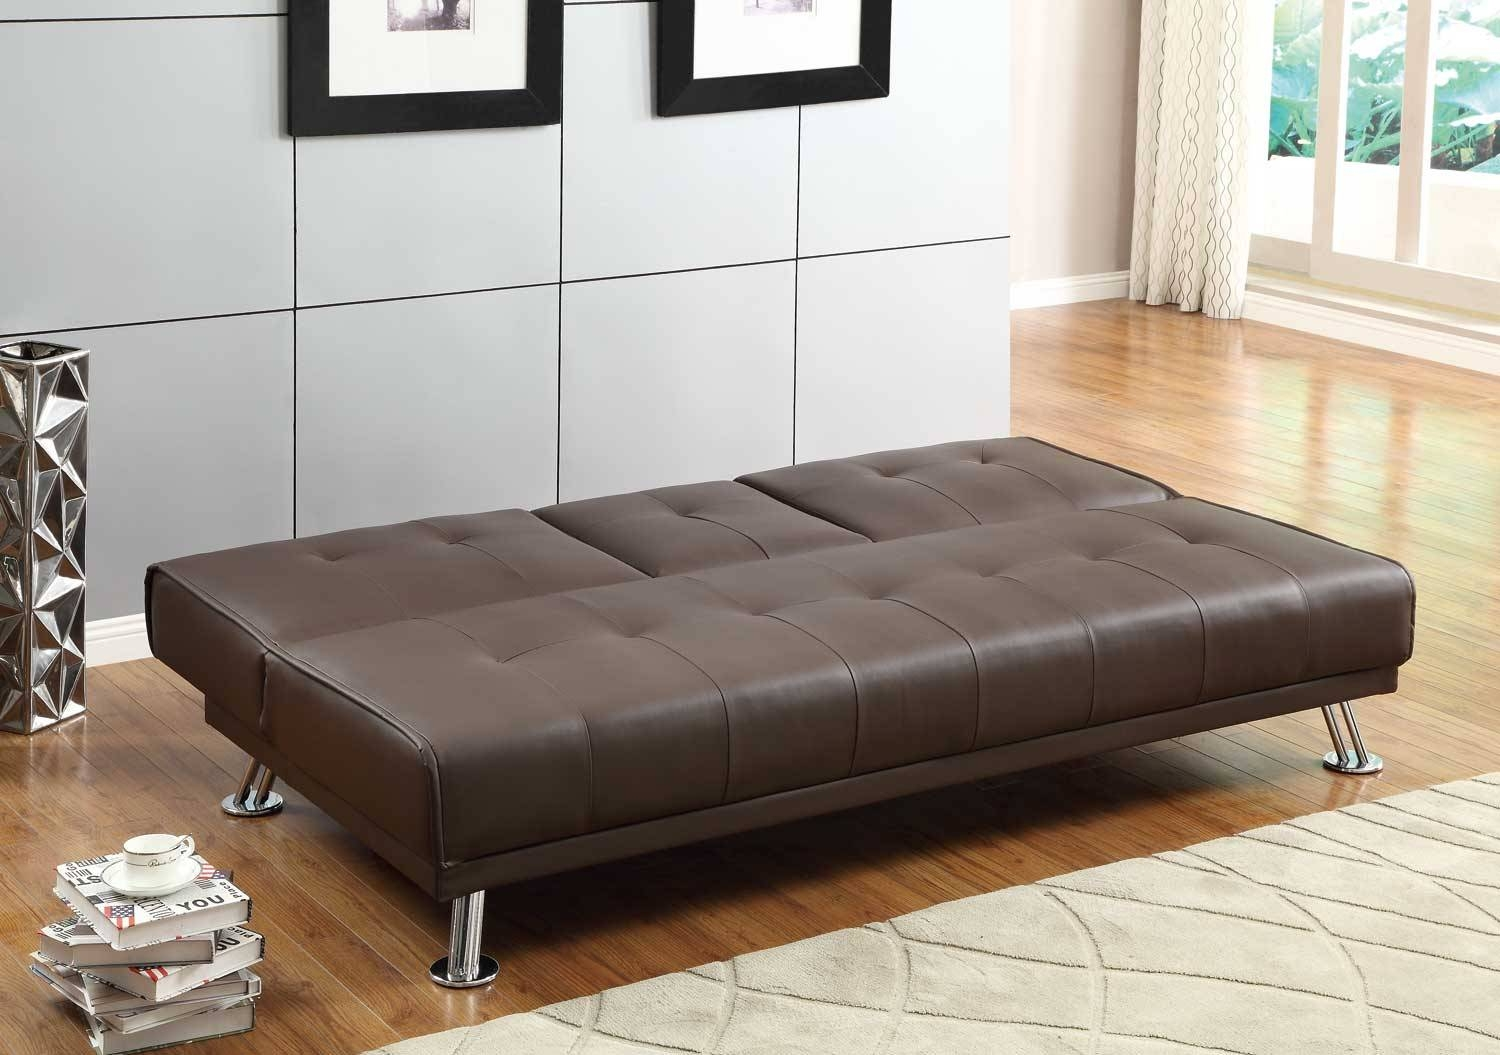 Comfy Click Clack Sofa Bed With Storage — Home Design Stylinghome pertaining to Clic Clac Sofa Beds (Image 5 of 15)